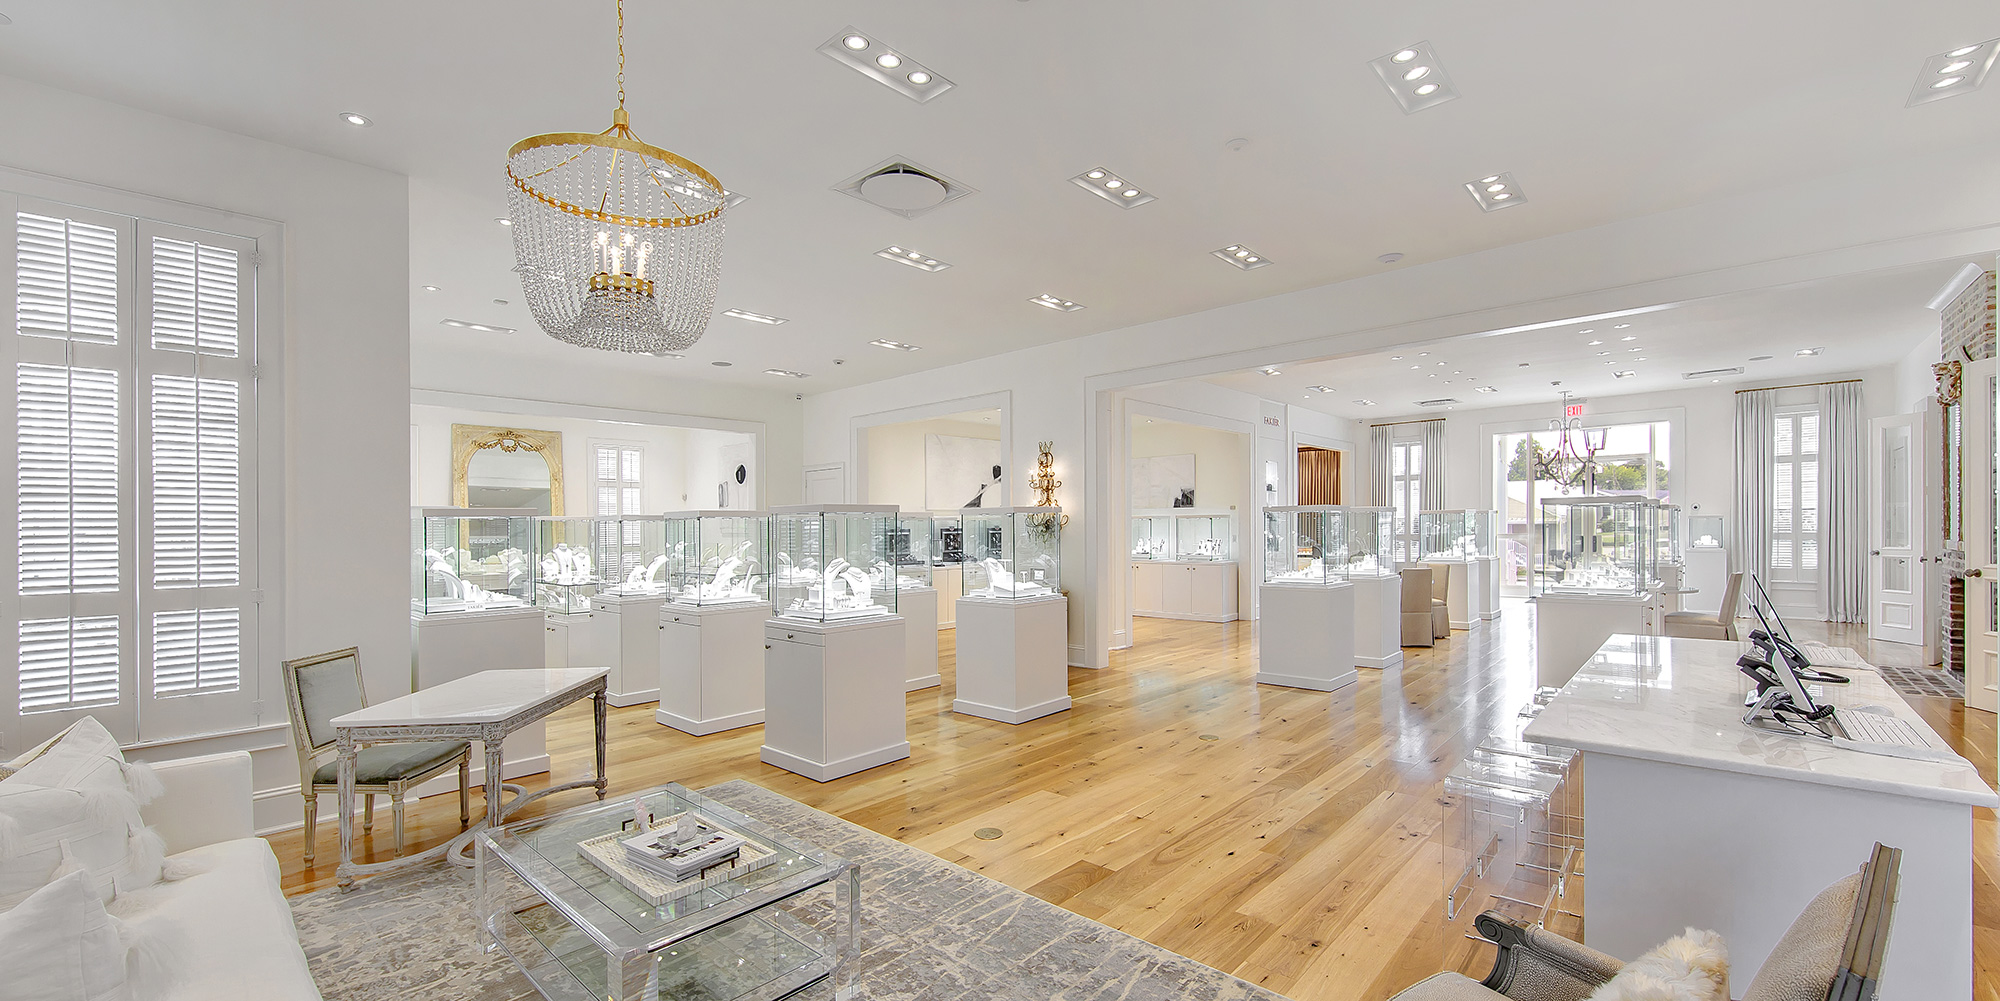 Louisiana Jewelry Store Is Inspired by Residential Design and Museum Interiors